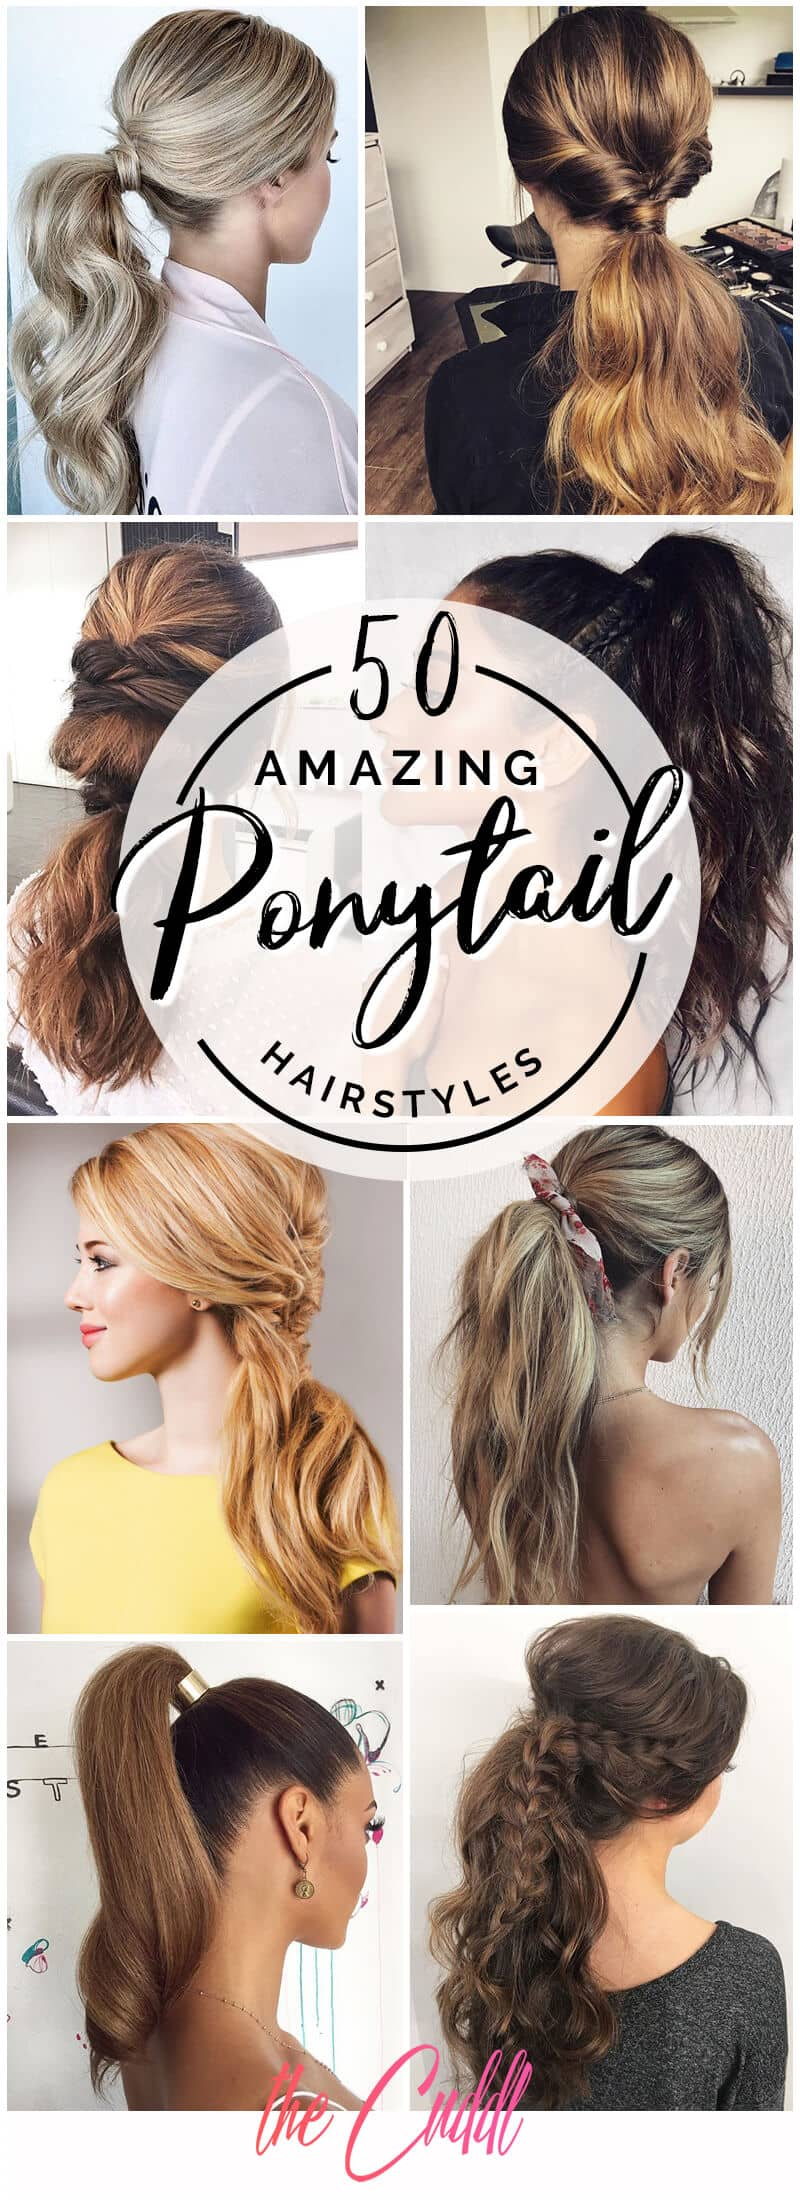 50 Gorgeous Ponytail Hairstyles to Update Your Updo